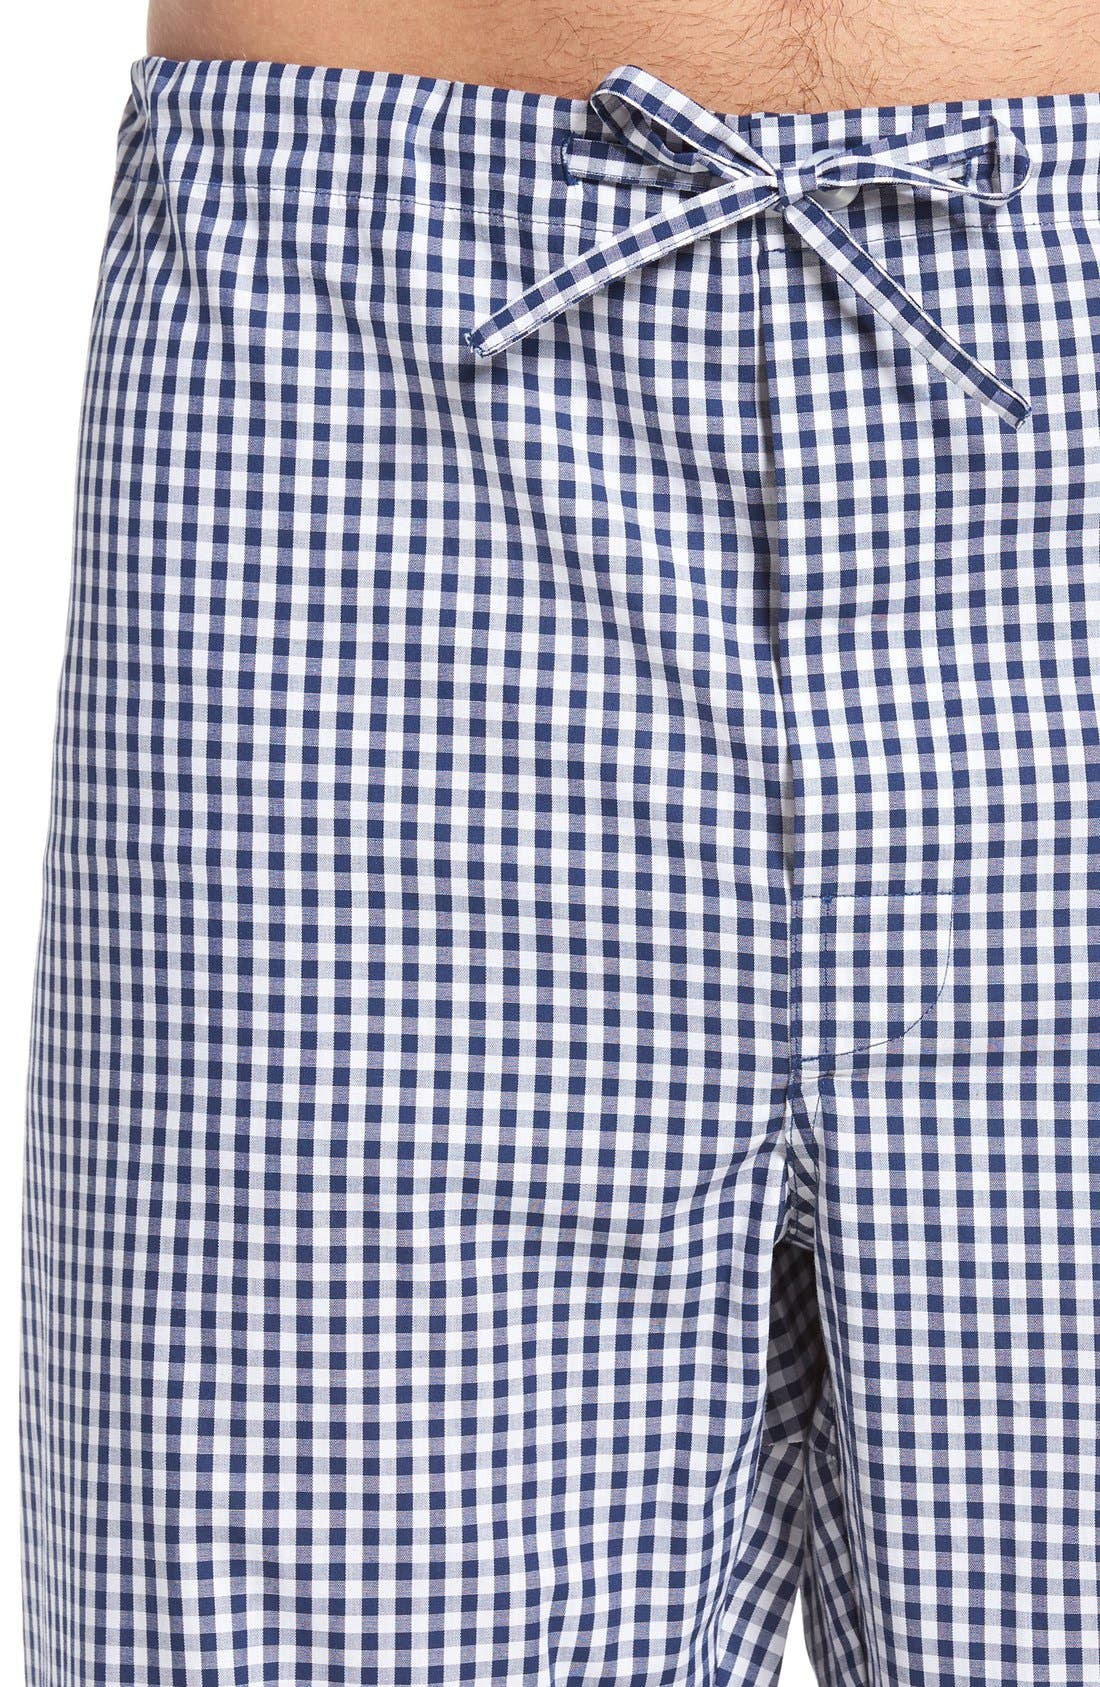 'Hot & Cold' Pajamas,                             Alternate thumbnail 4, color,                             Blue Gingham